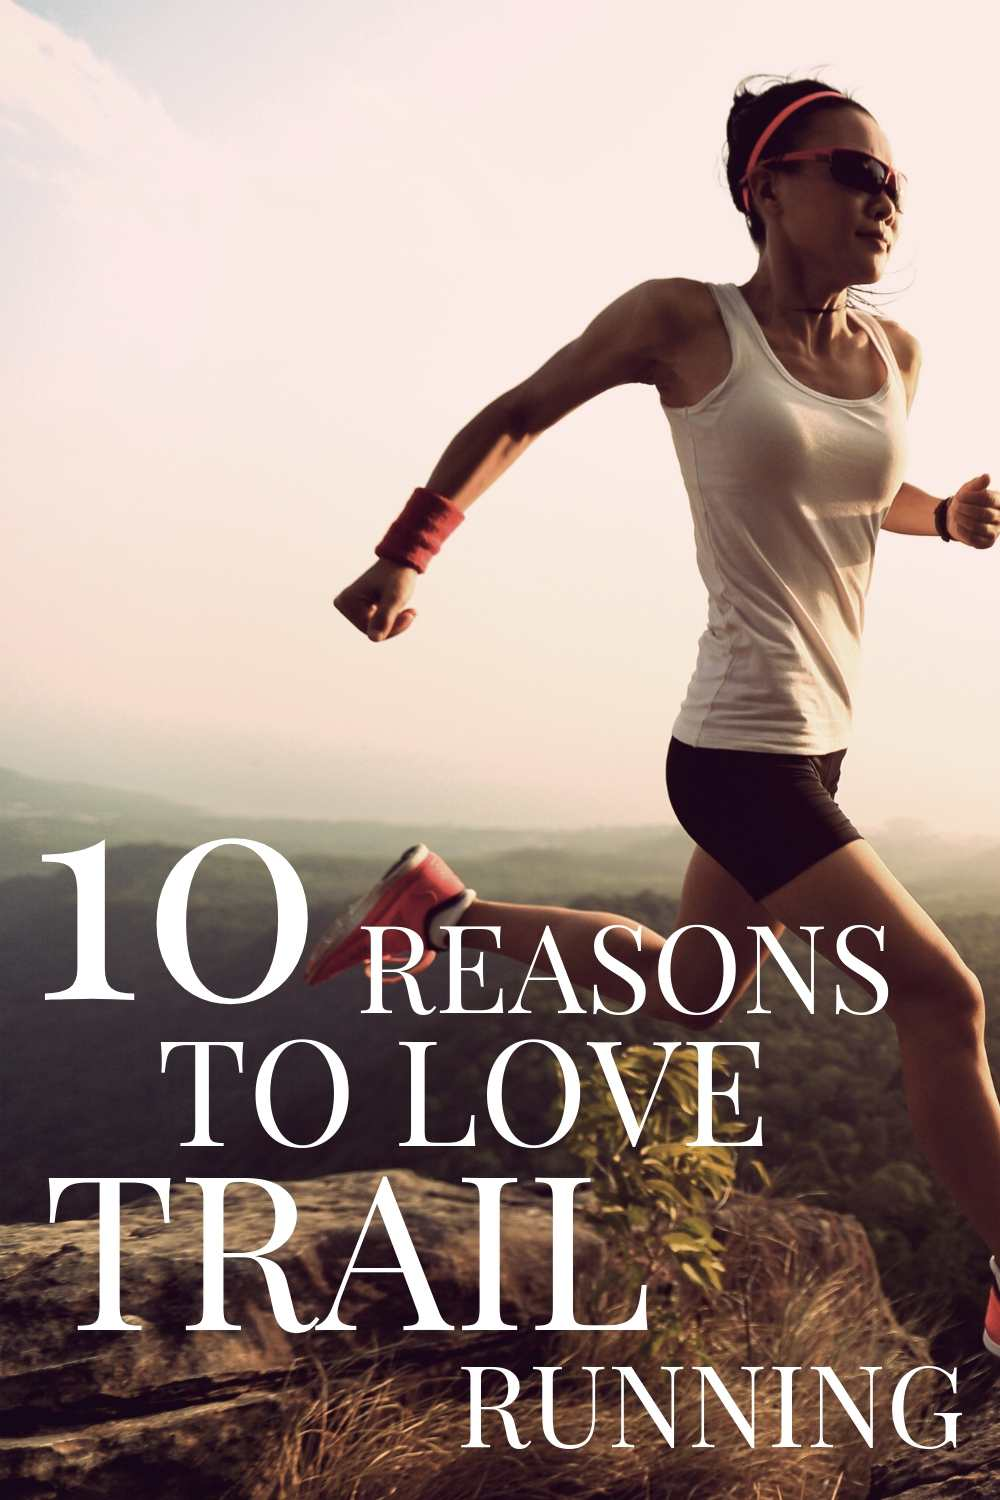 It\'s no wonder trail running is rapidly increasing in popularity. It ticks all the boxes for destressing, getting into shape, making new friends and seeking adventure. Here are my top 10 reasons for loving the sport...#trailrunning